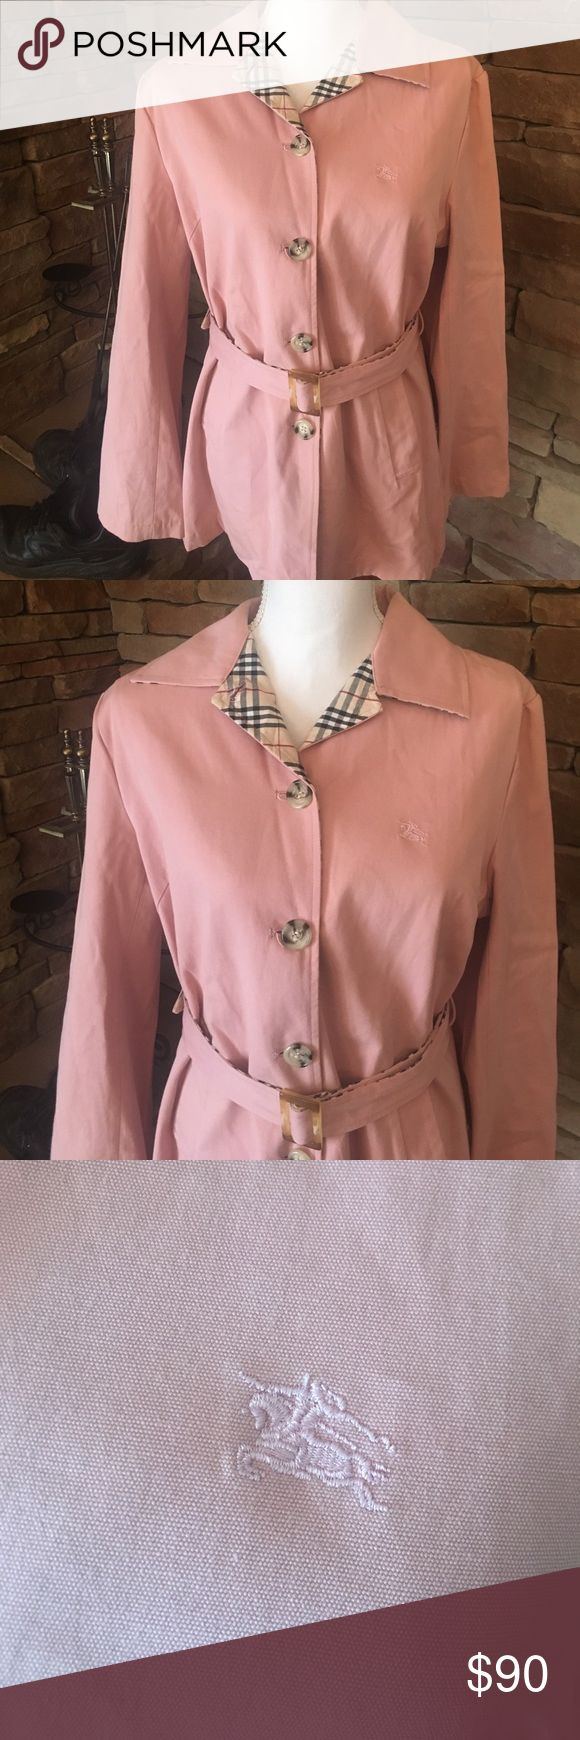 "Burberry Blue Label Jacket Baby pink with Nova check collar, belt and down the row of buttons on the interior.  The belt is reversible. I ordered this thru and online consignment shop.   If this fit me I would NOT be selling.  😂.  Belt is reversible.   4 button closure, 3 buttons on each sleeve.   The size tag has been removed and since this is a Japan release all care instructions are in their language.     🎀 pit to pit: 20"" 🎀 shoulder to hem: 27"" 🎀 waist is 18"" 🎀 sleeves: 23"" L   All…"